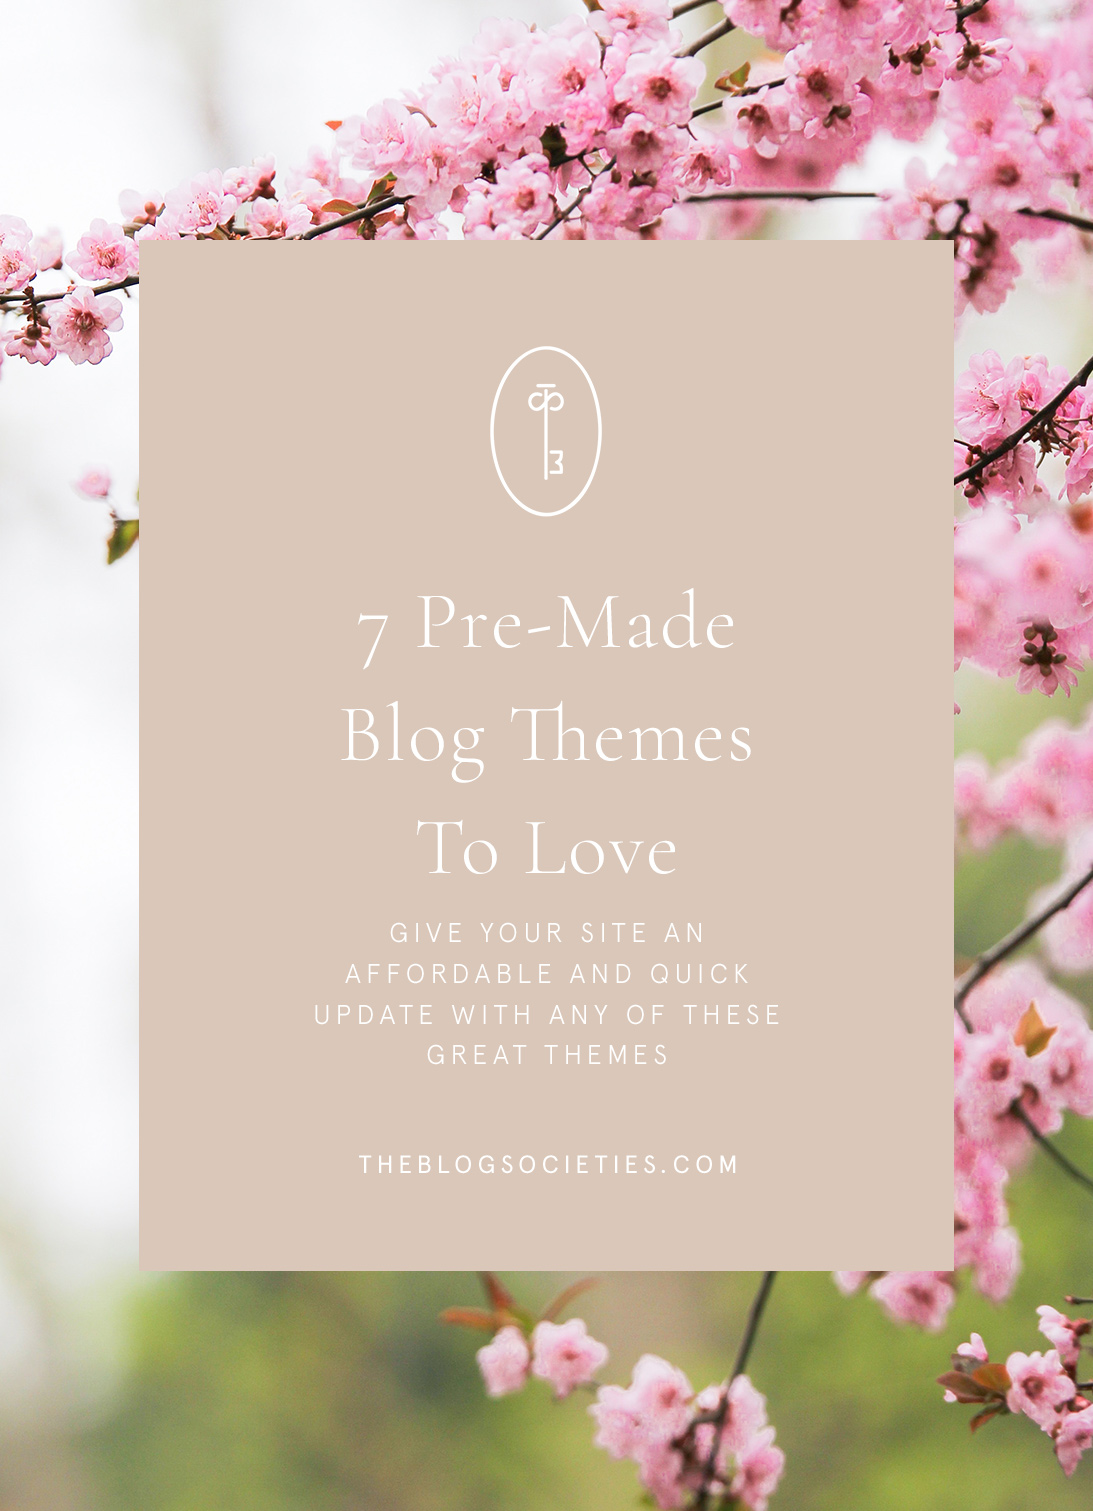 pre-made blog themes for fashion bloggers - The Blog Societies